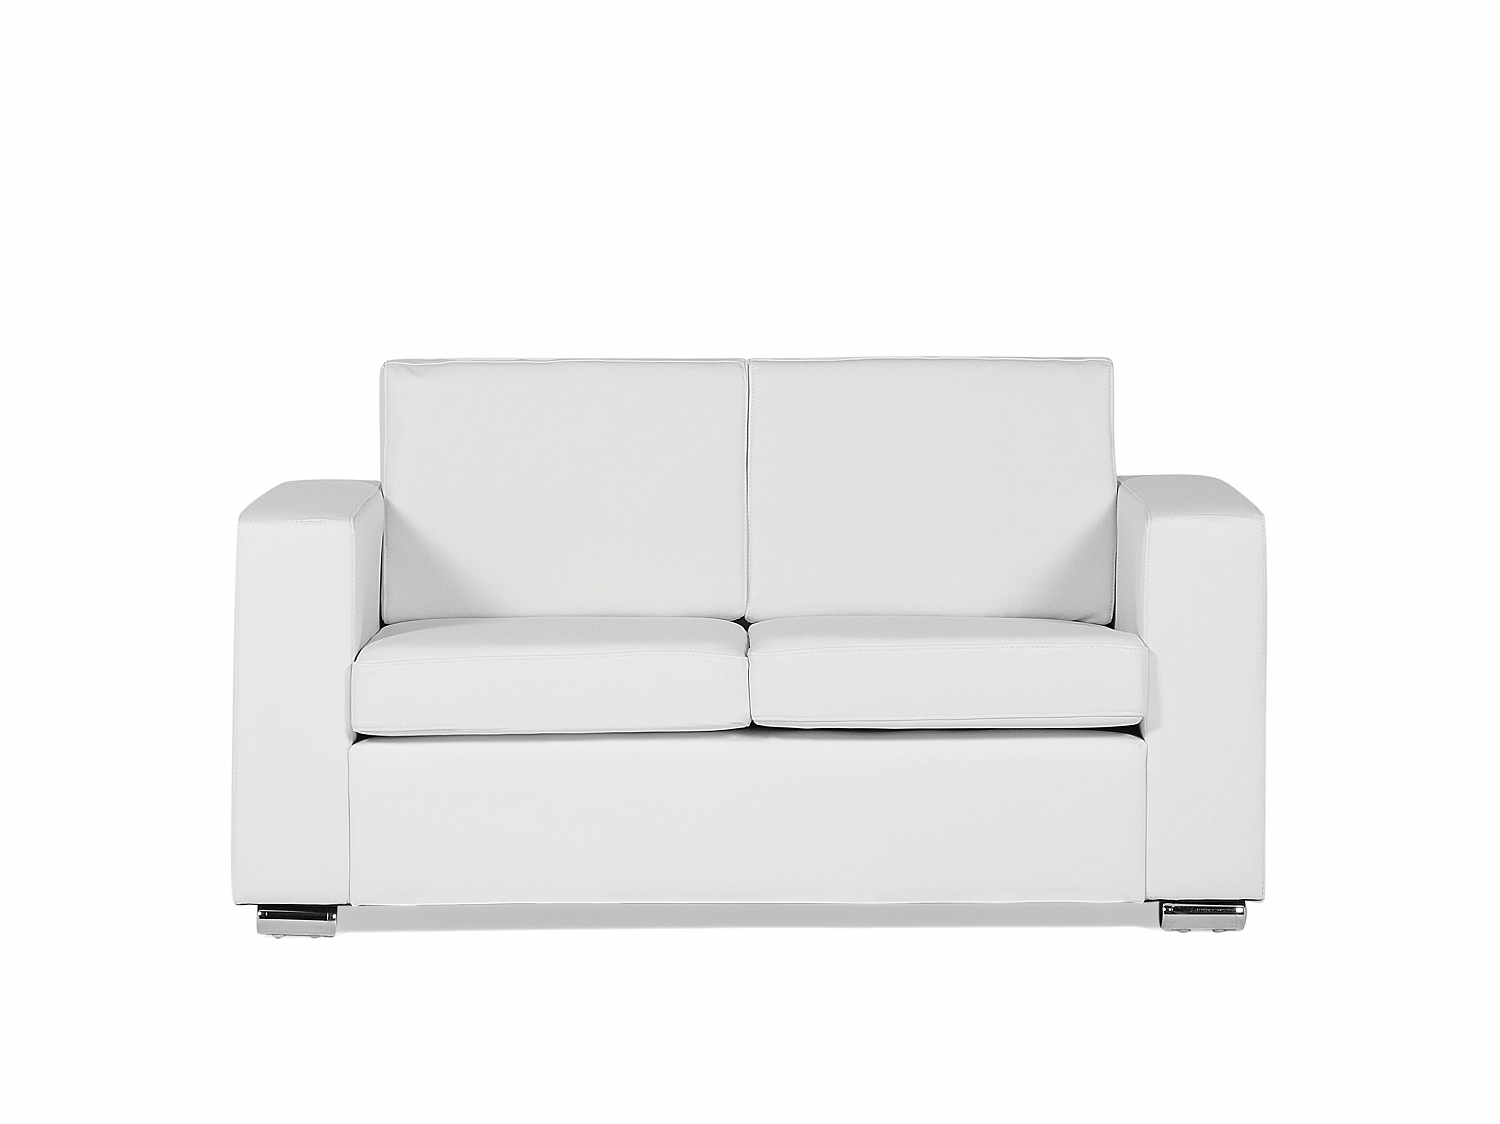 white leather sofa love seat couch 2 seater settee modern metal legs ebay. Black Bedroom Furniture Sets. Home Design Ideas